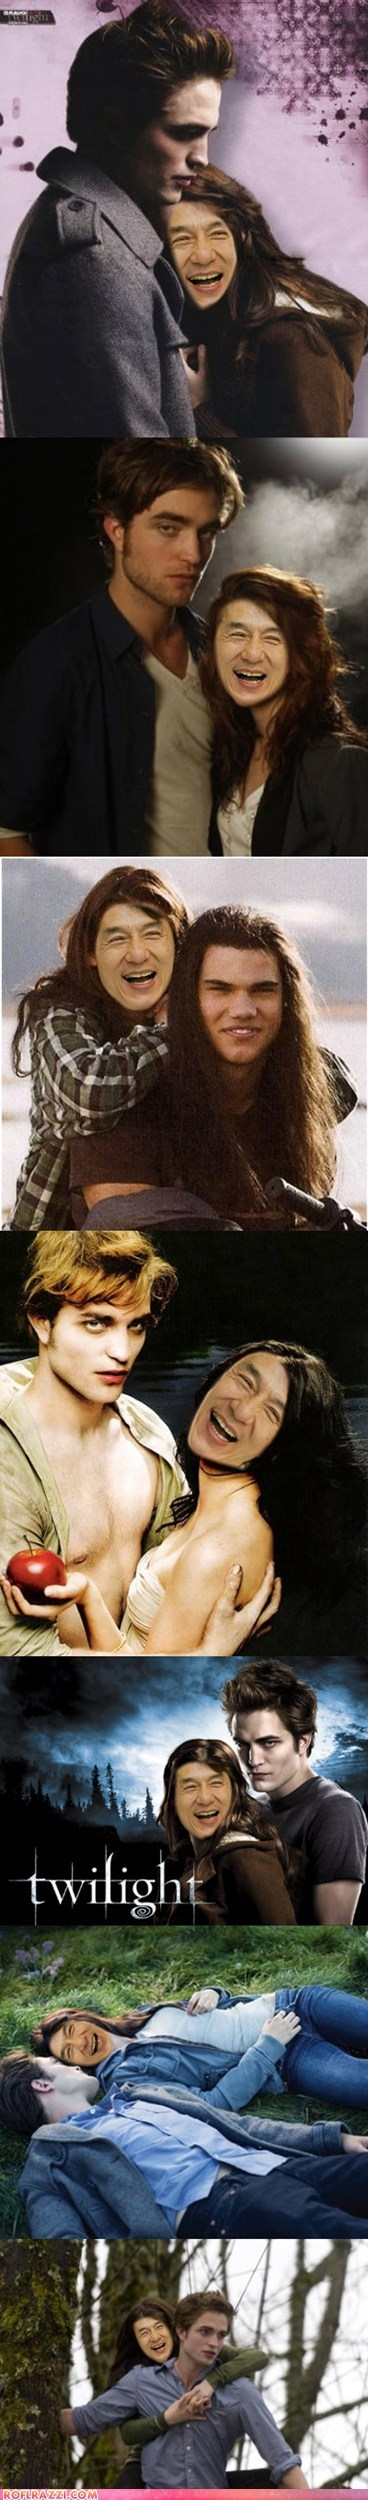 fake funny Hall of Fame Jackie Chan robert pattinson shoop taylor lautner twilight - 5764719104